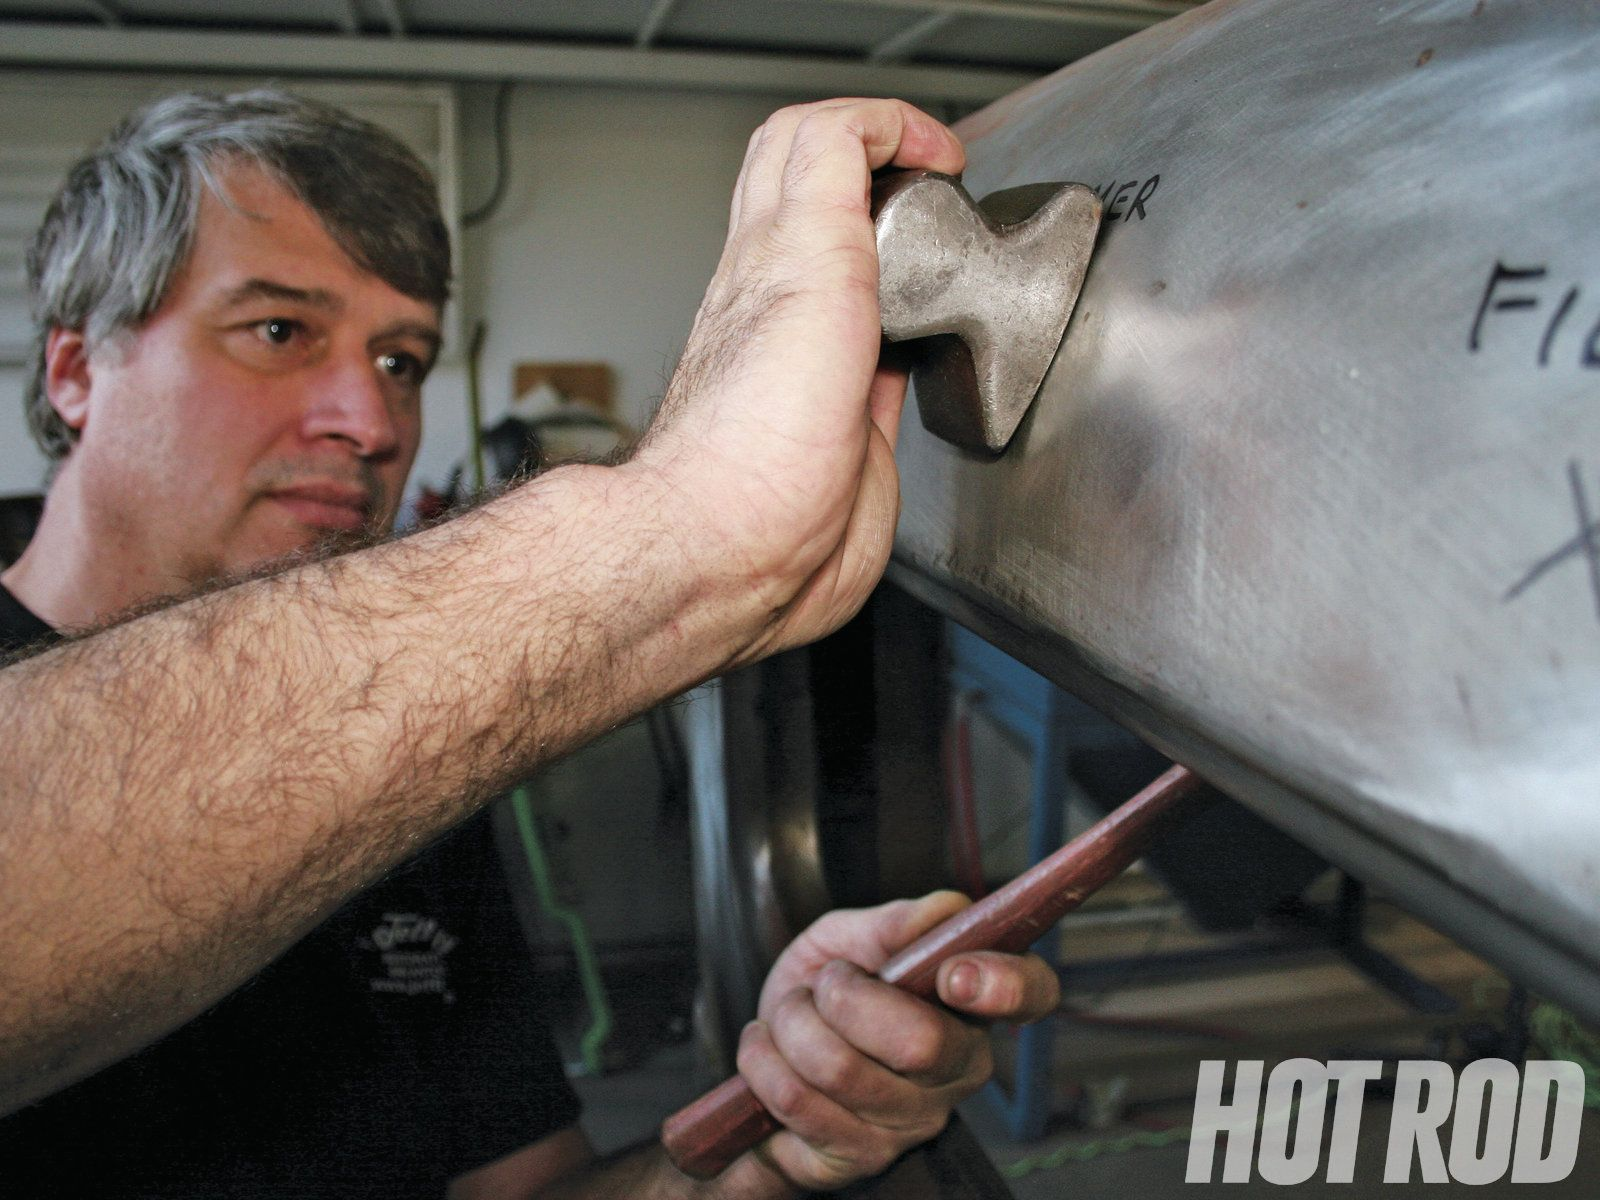 Diy auto body and paint tips photo 2 auto repair pinterest diy auto body and paint tips photo 2 solutioingenieria Images